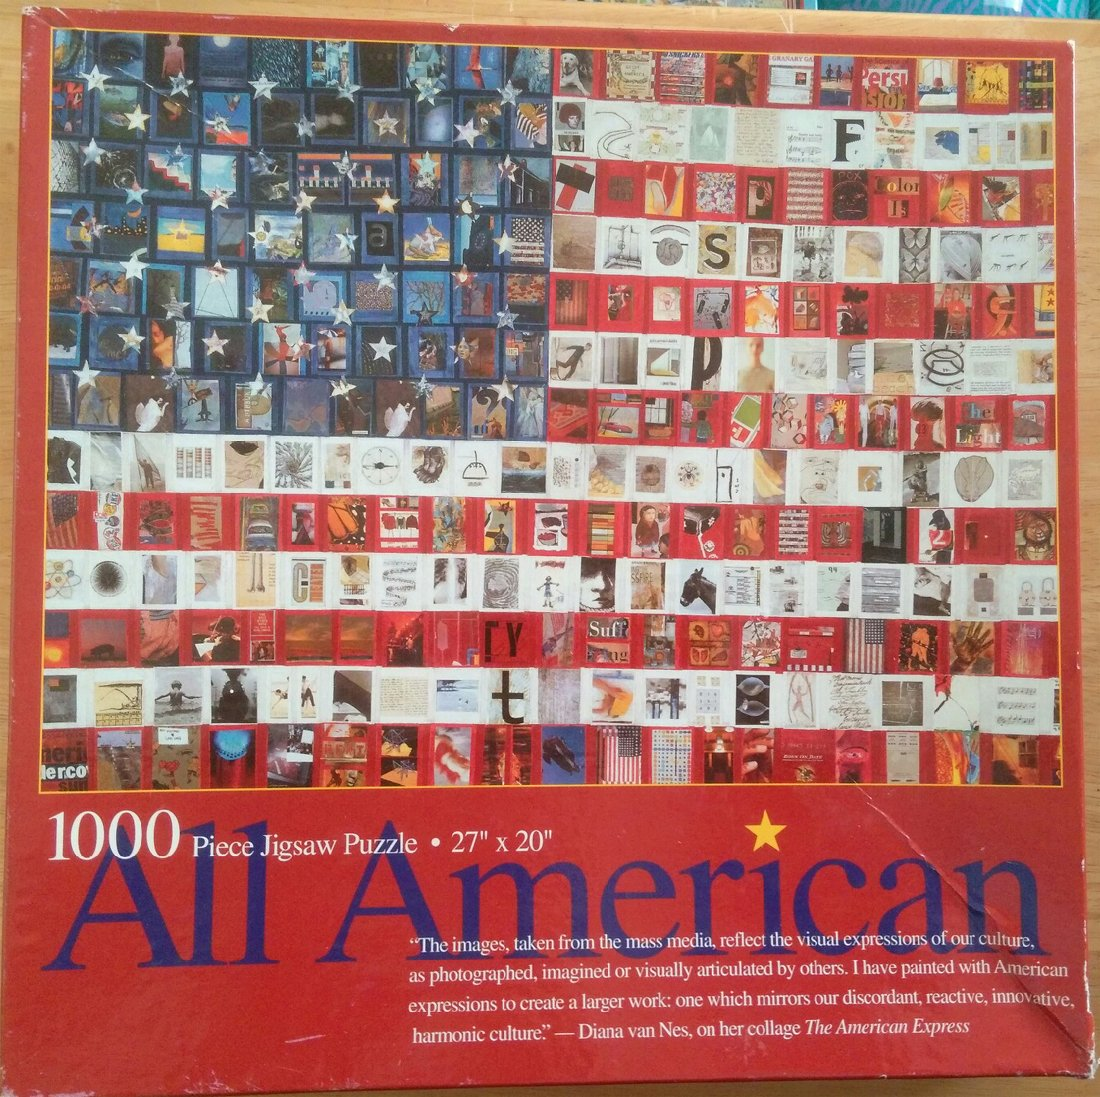 All American 1000 Piece Jigsaw Puzzle Mass Media Images Mosaic by Ceaco, Inc